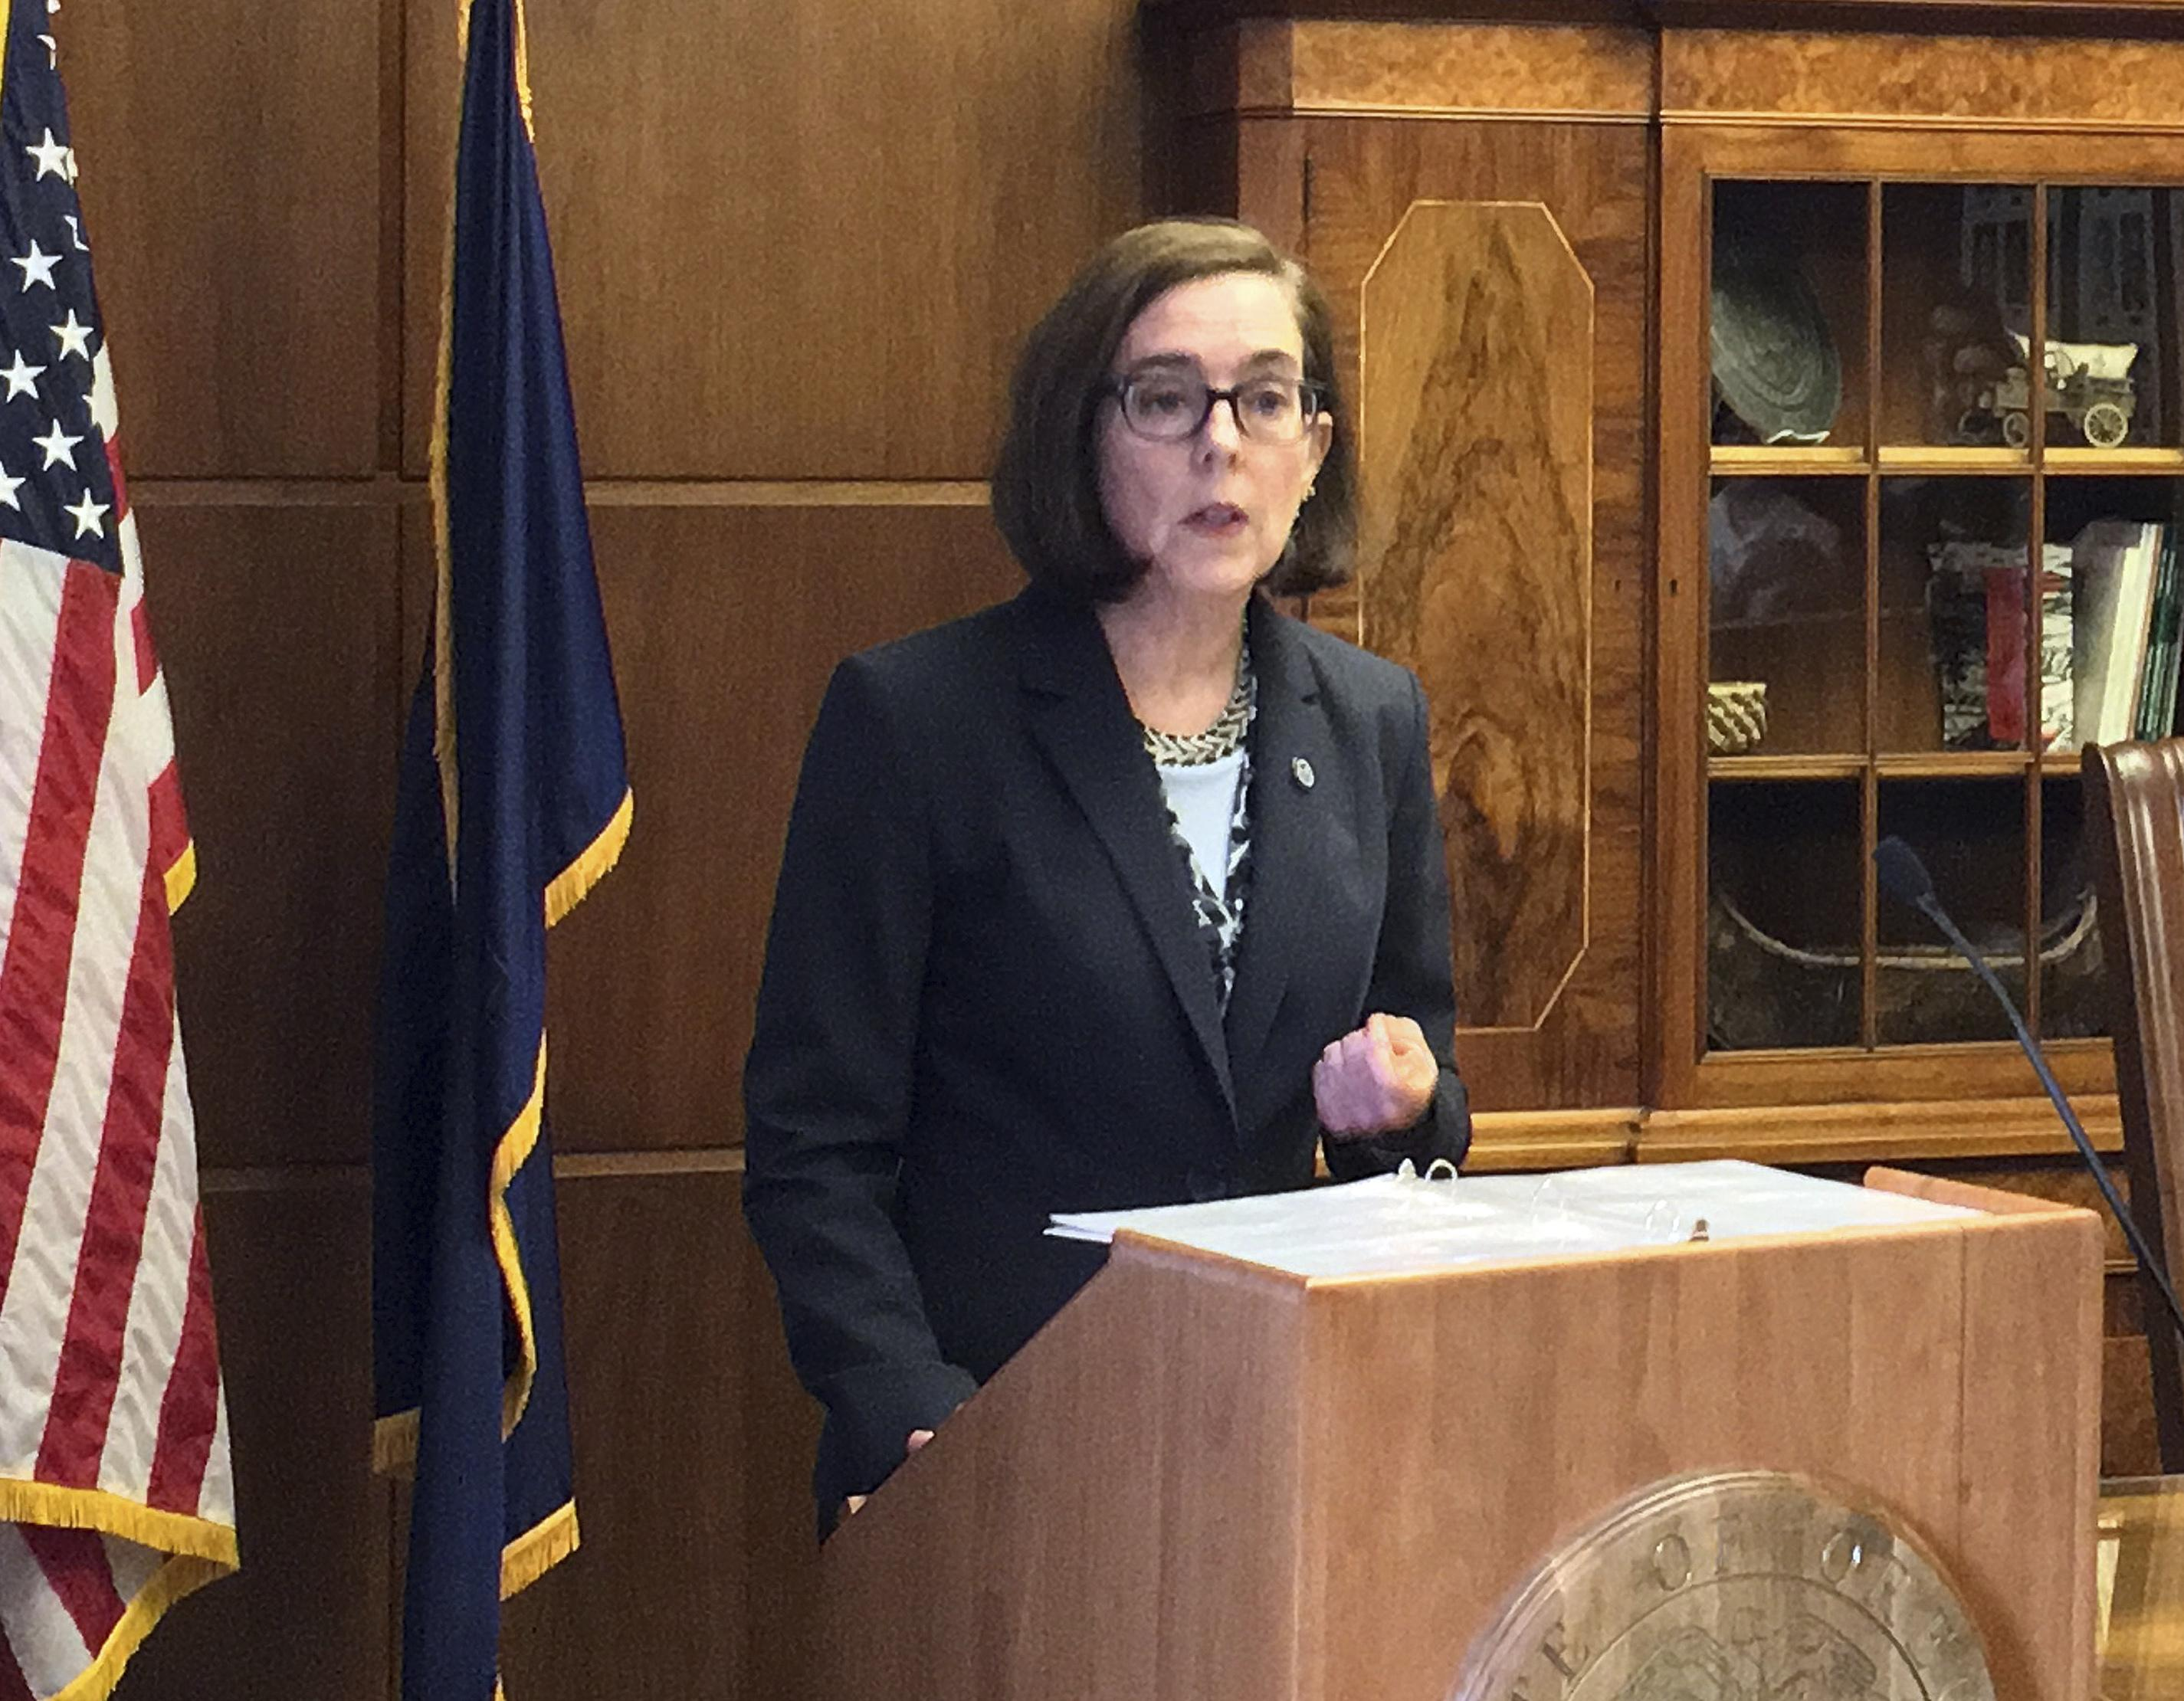 Governor signs bill making Oregon first to offer free abortions for all, including illegal aliens